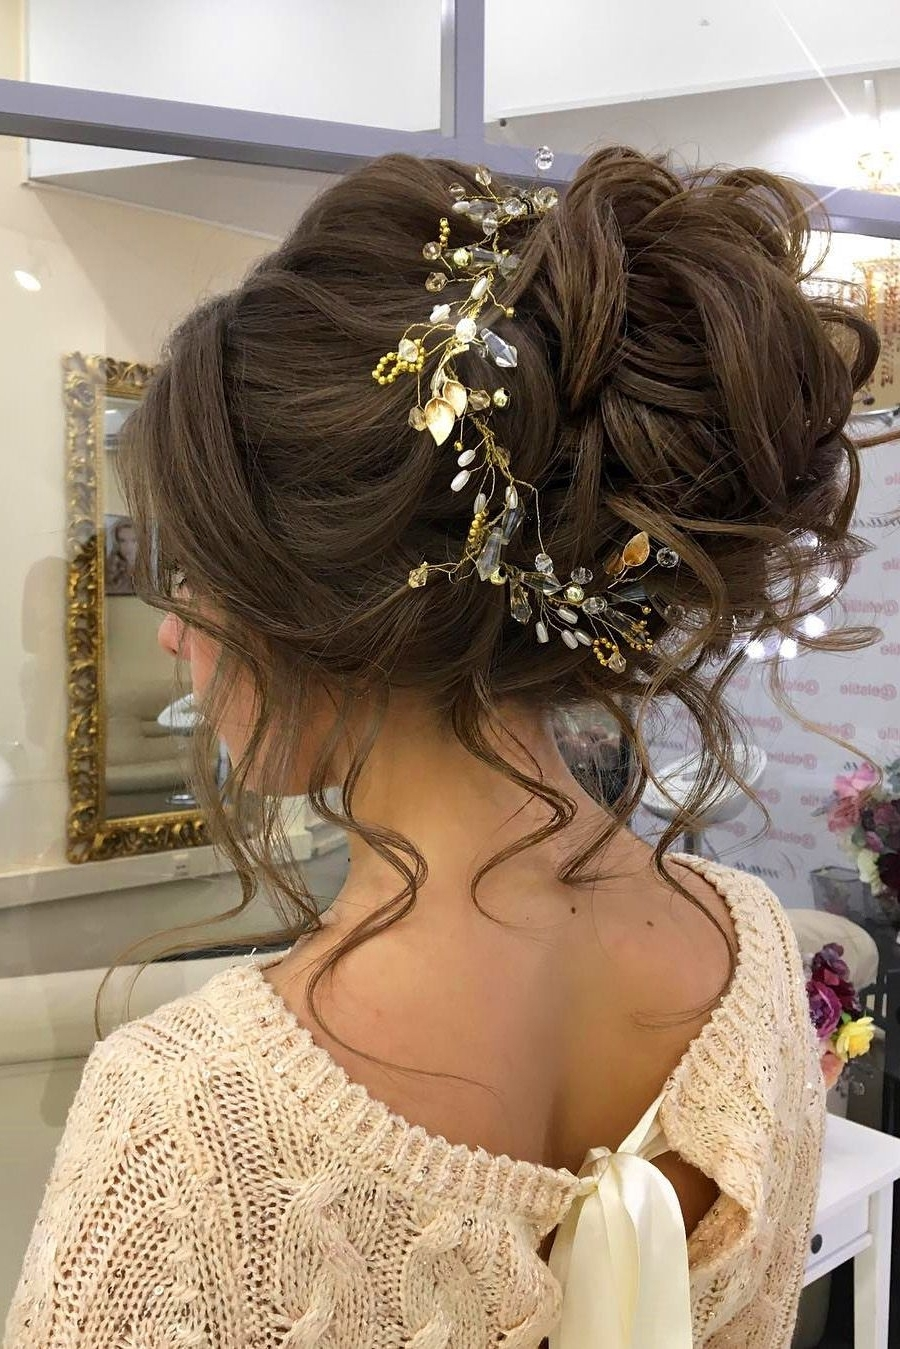 30 Eye Catching Wedding Bun Hairstyles | Wedding Bun Hairstyles Throughout Updo Hairstyles For Wedding (View 2 of 15)